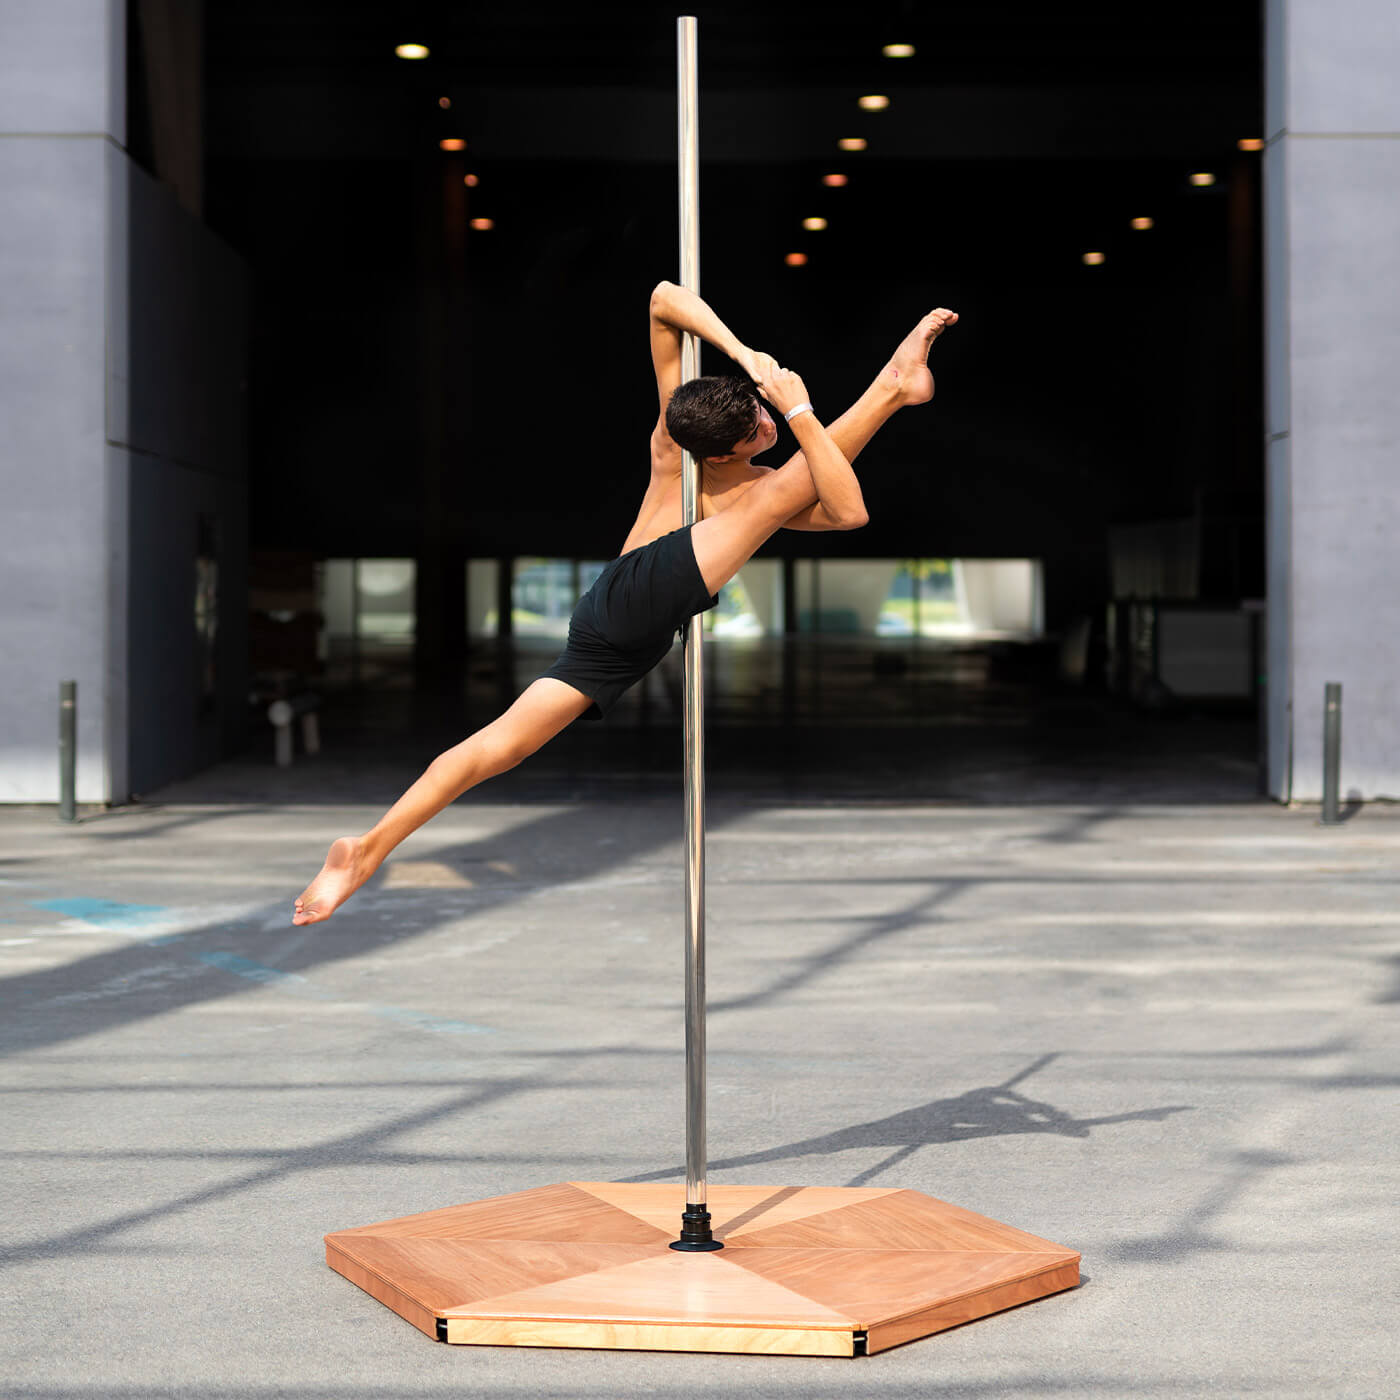 Pali Pole Dance pedane